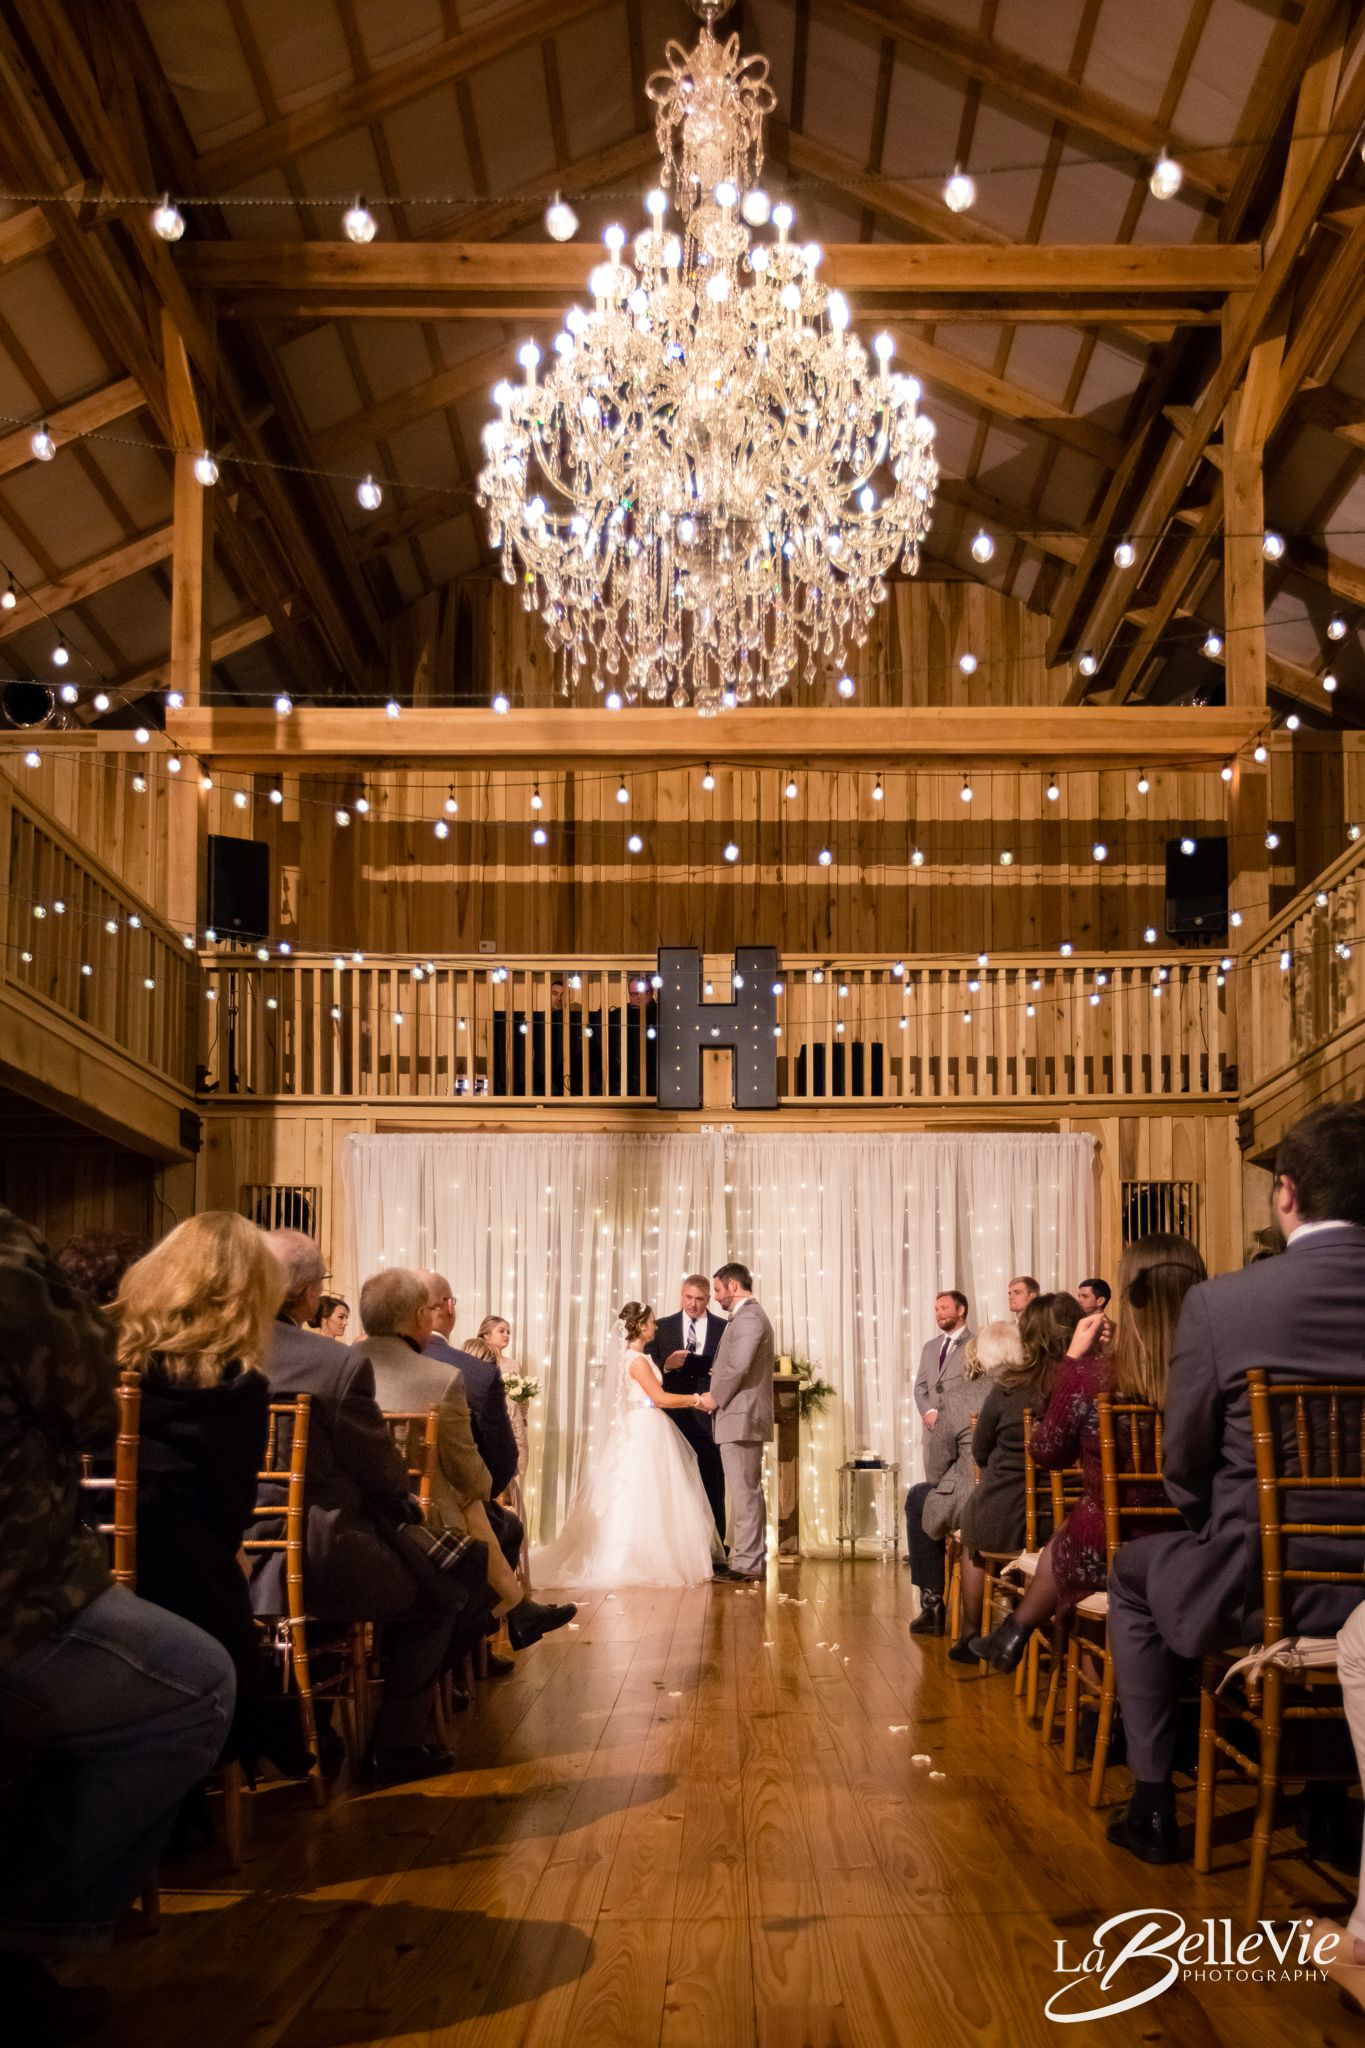 Mid-wedding ceremony at the beautiful Bagsby Ranch in Gallatin TN ...